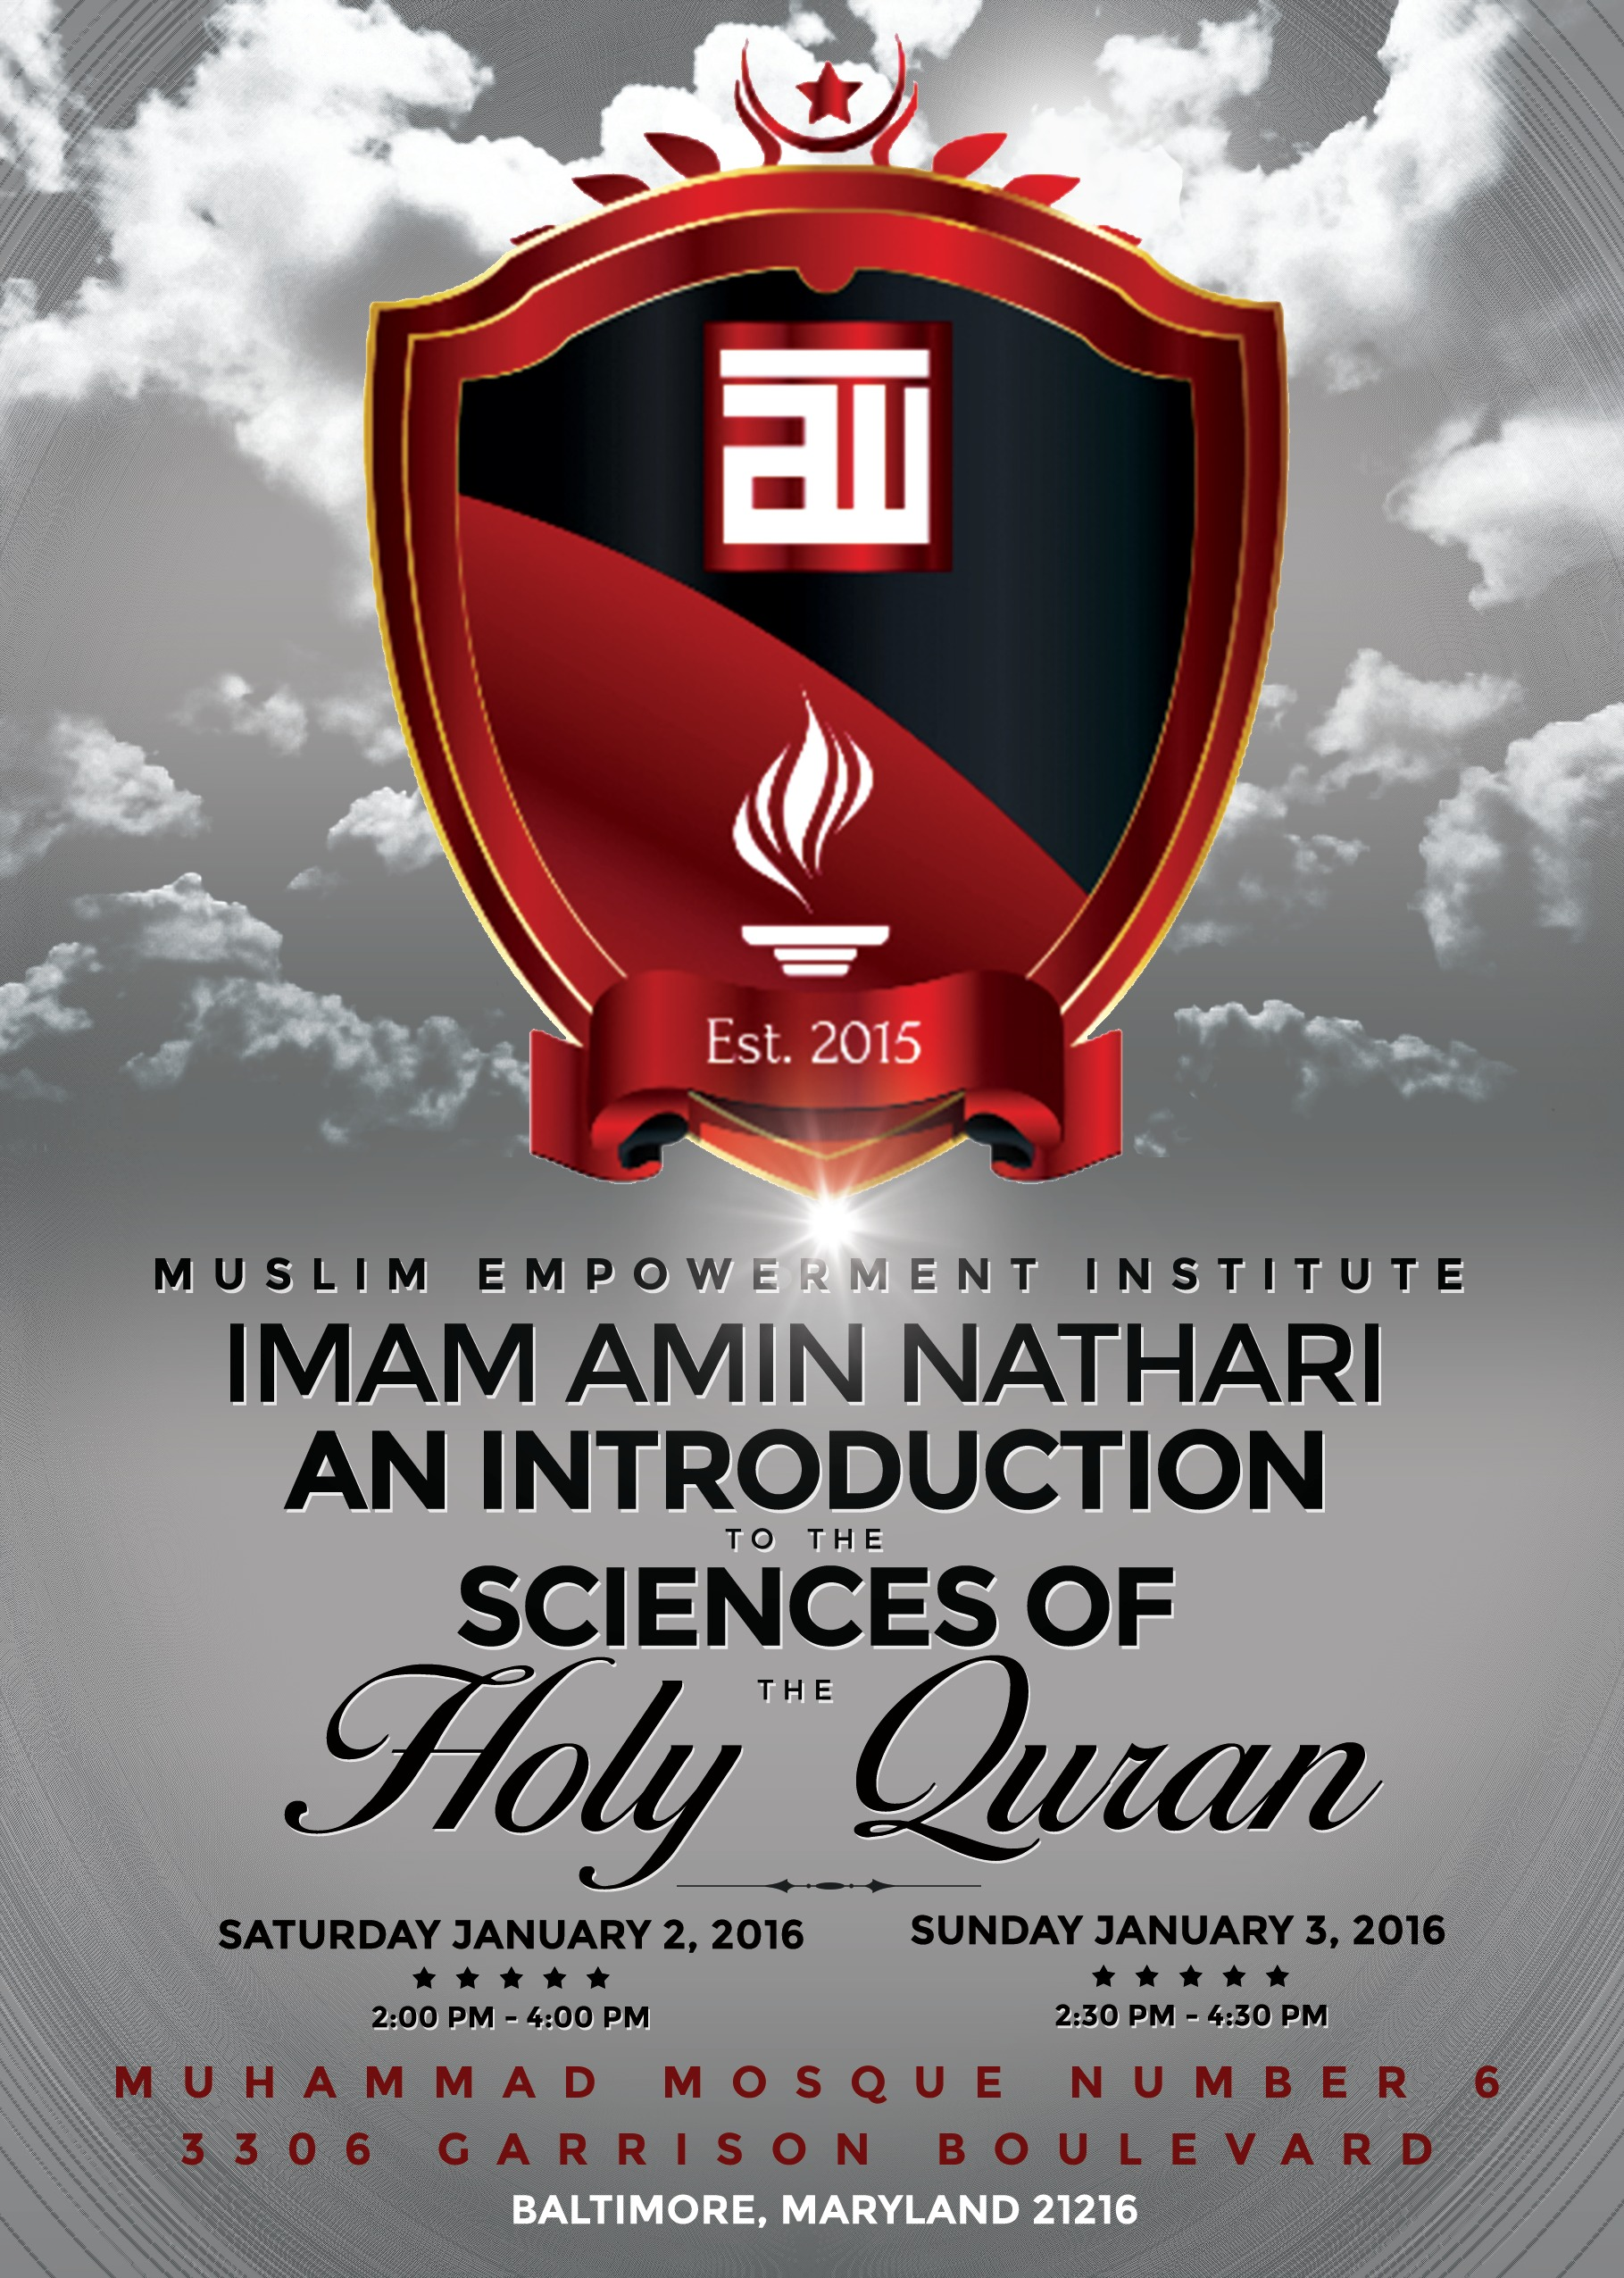 an-introduction-to-the-sciences-of-the-holy-quran-muhammad-mosque-number-6-mei-amin-nathari-mecca-donna-mecca-digitale-2-re